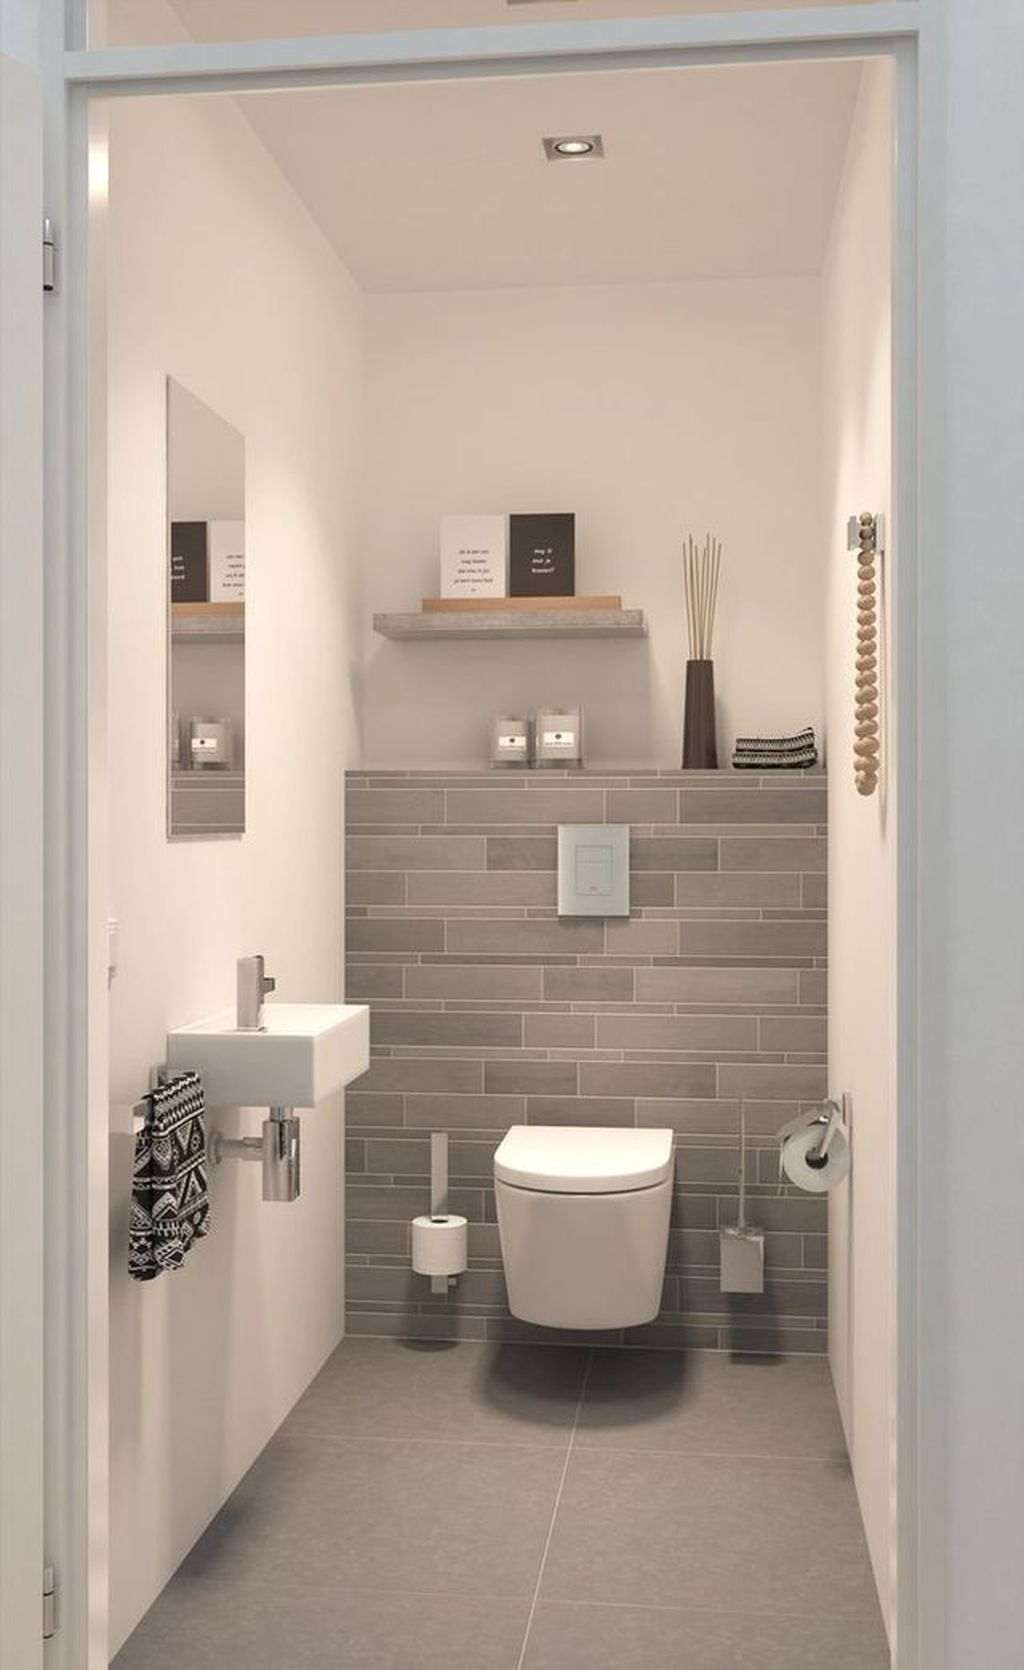 office bathroom decorating ideas 38 cozy small office bathroom designs ideas toilet design bathroom design small downstairs 3460